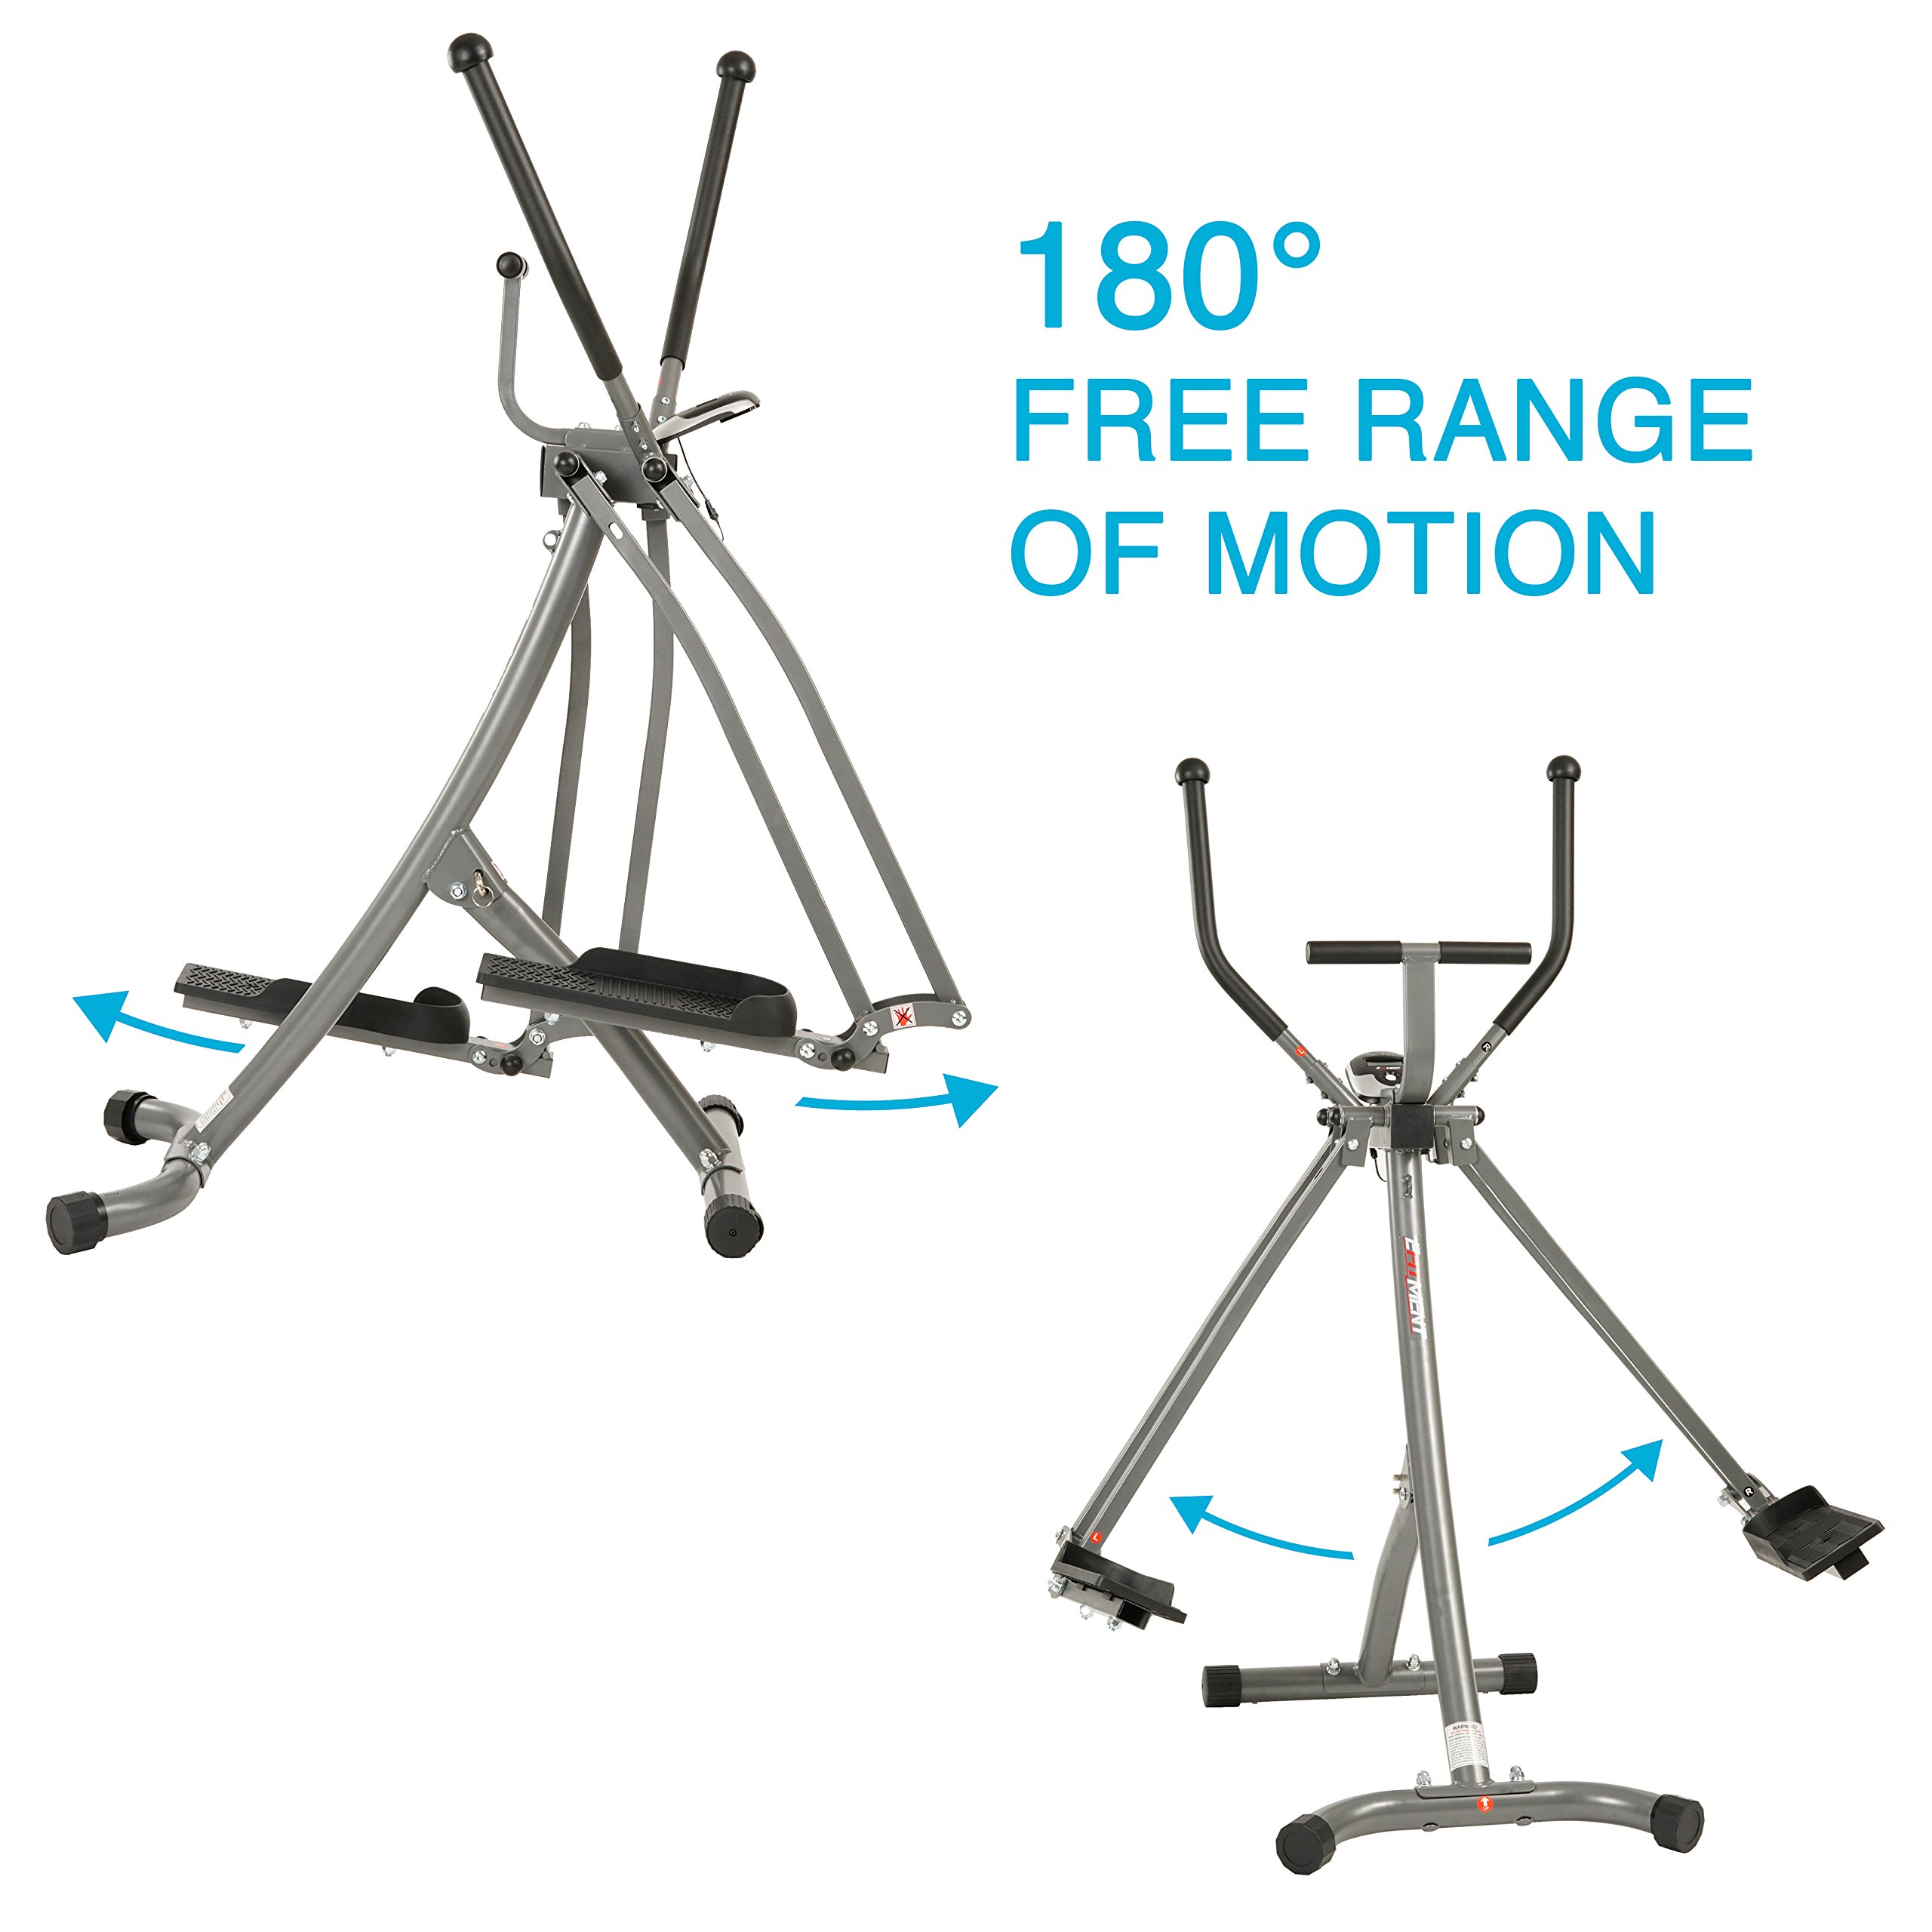 EFITMENT Air Walker Glider Elliptical Machine with Side Sway Action & 360 Motion for Exercise and Fitness - E020 by EFITMENT (Image #3)